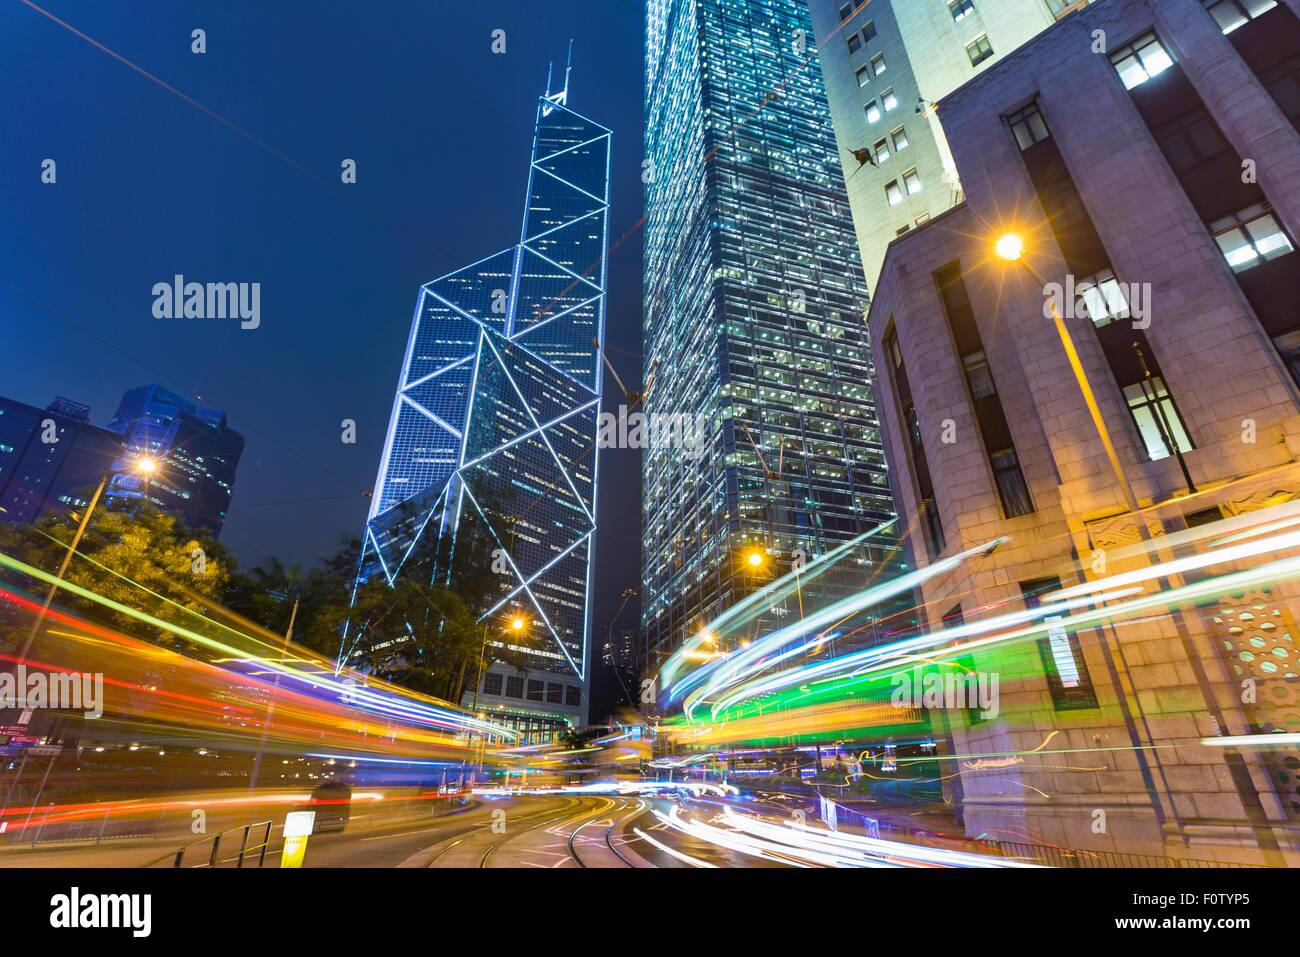 Hong Kong financial district with Bank of China building, Hong Kong, China - Stock Image